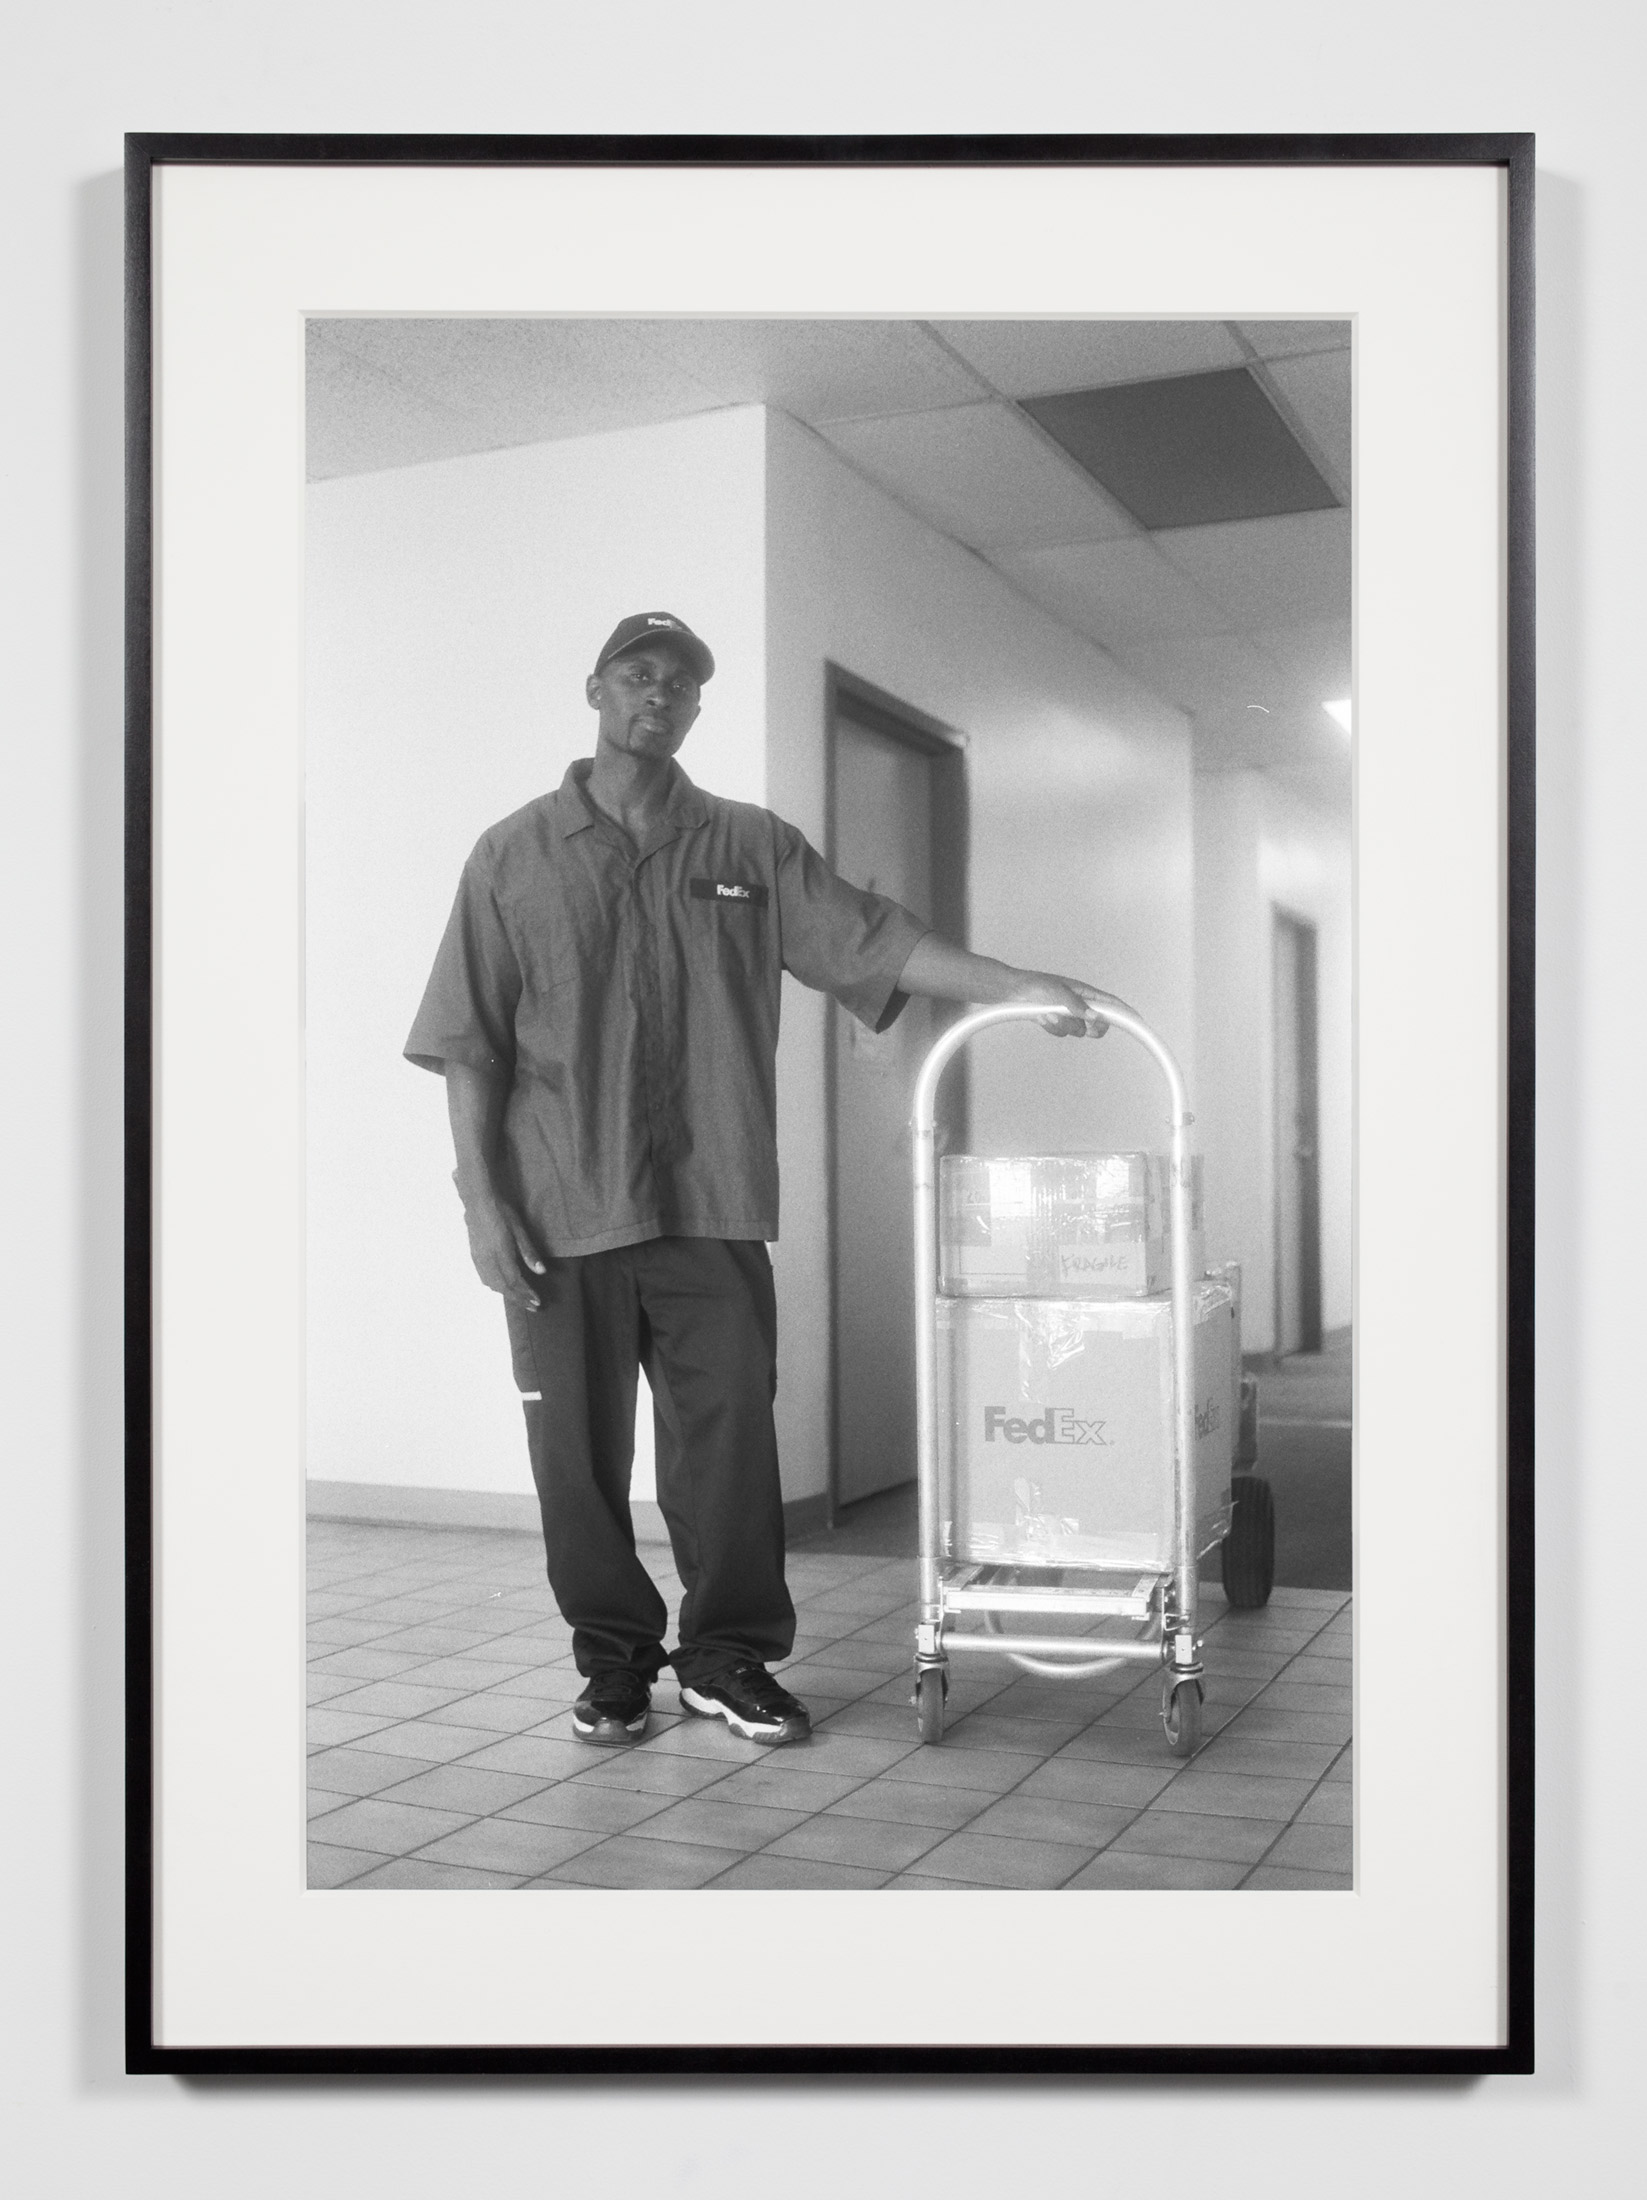 FedEx Courier, Los Angeles, California, September 12, 2008    2011   Epson Ultrachrome K3 archival ink jet print on Hahnemühle Photo Rag paper  36 3/8 x 26 3/8 inches   Industrial Portraits, 2008–